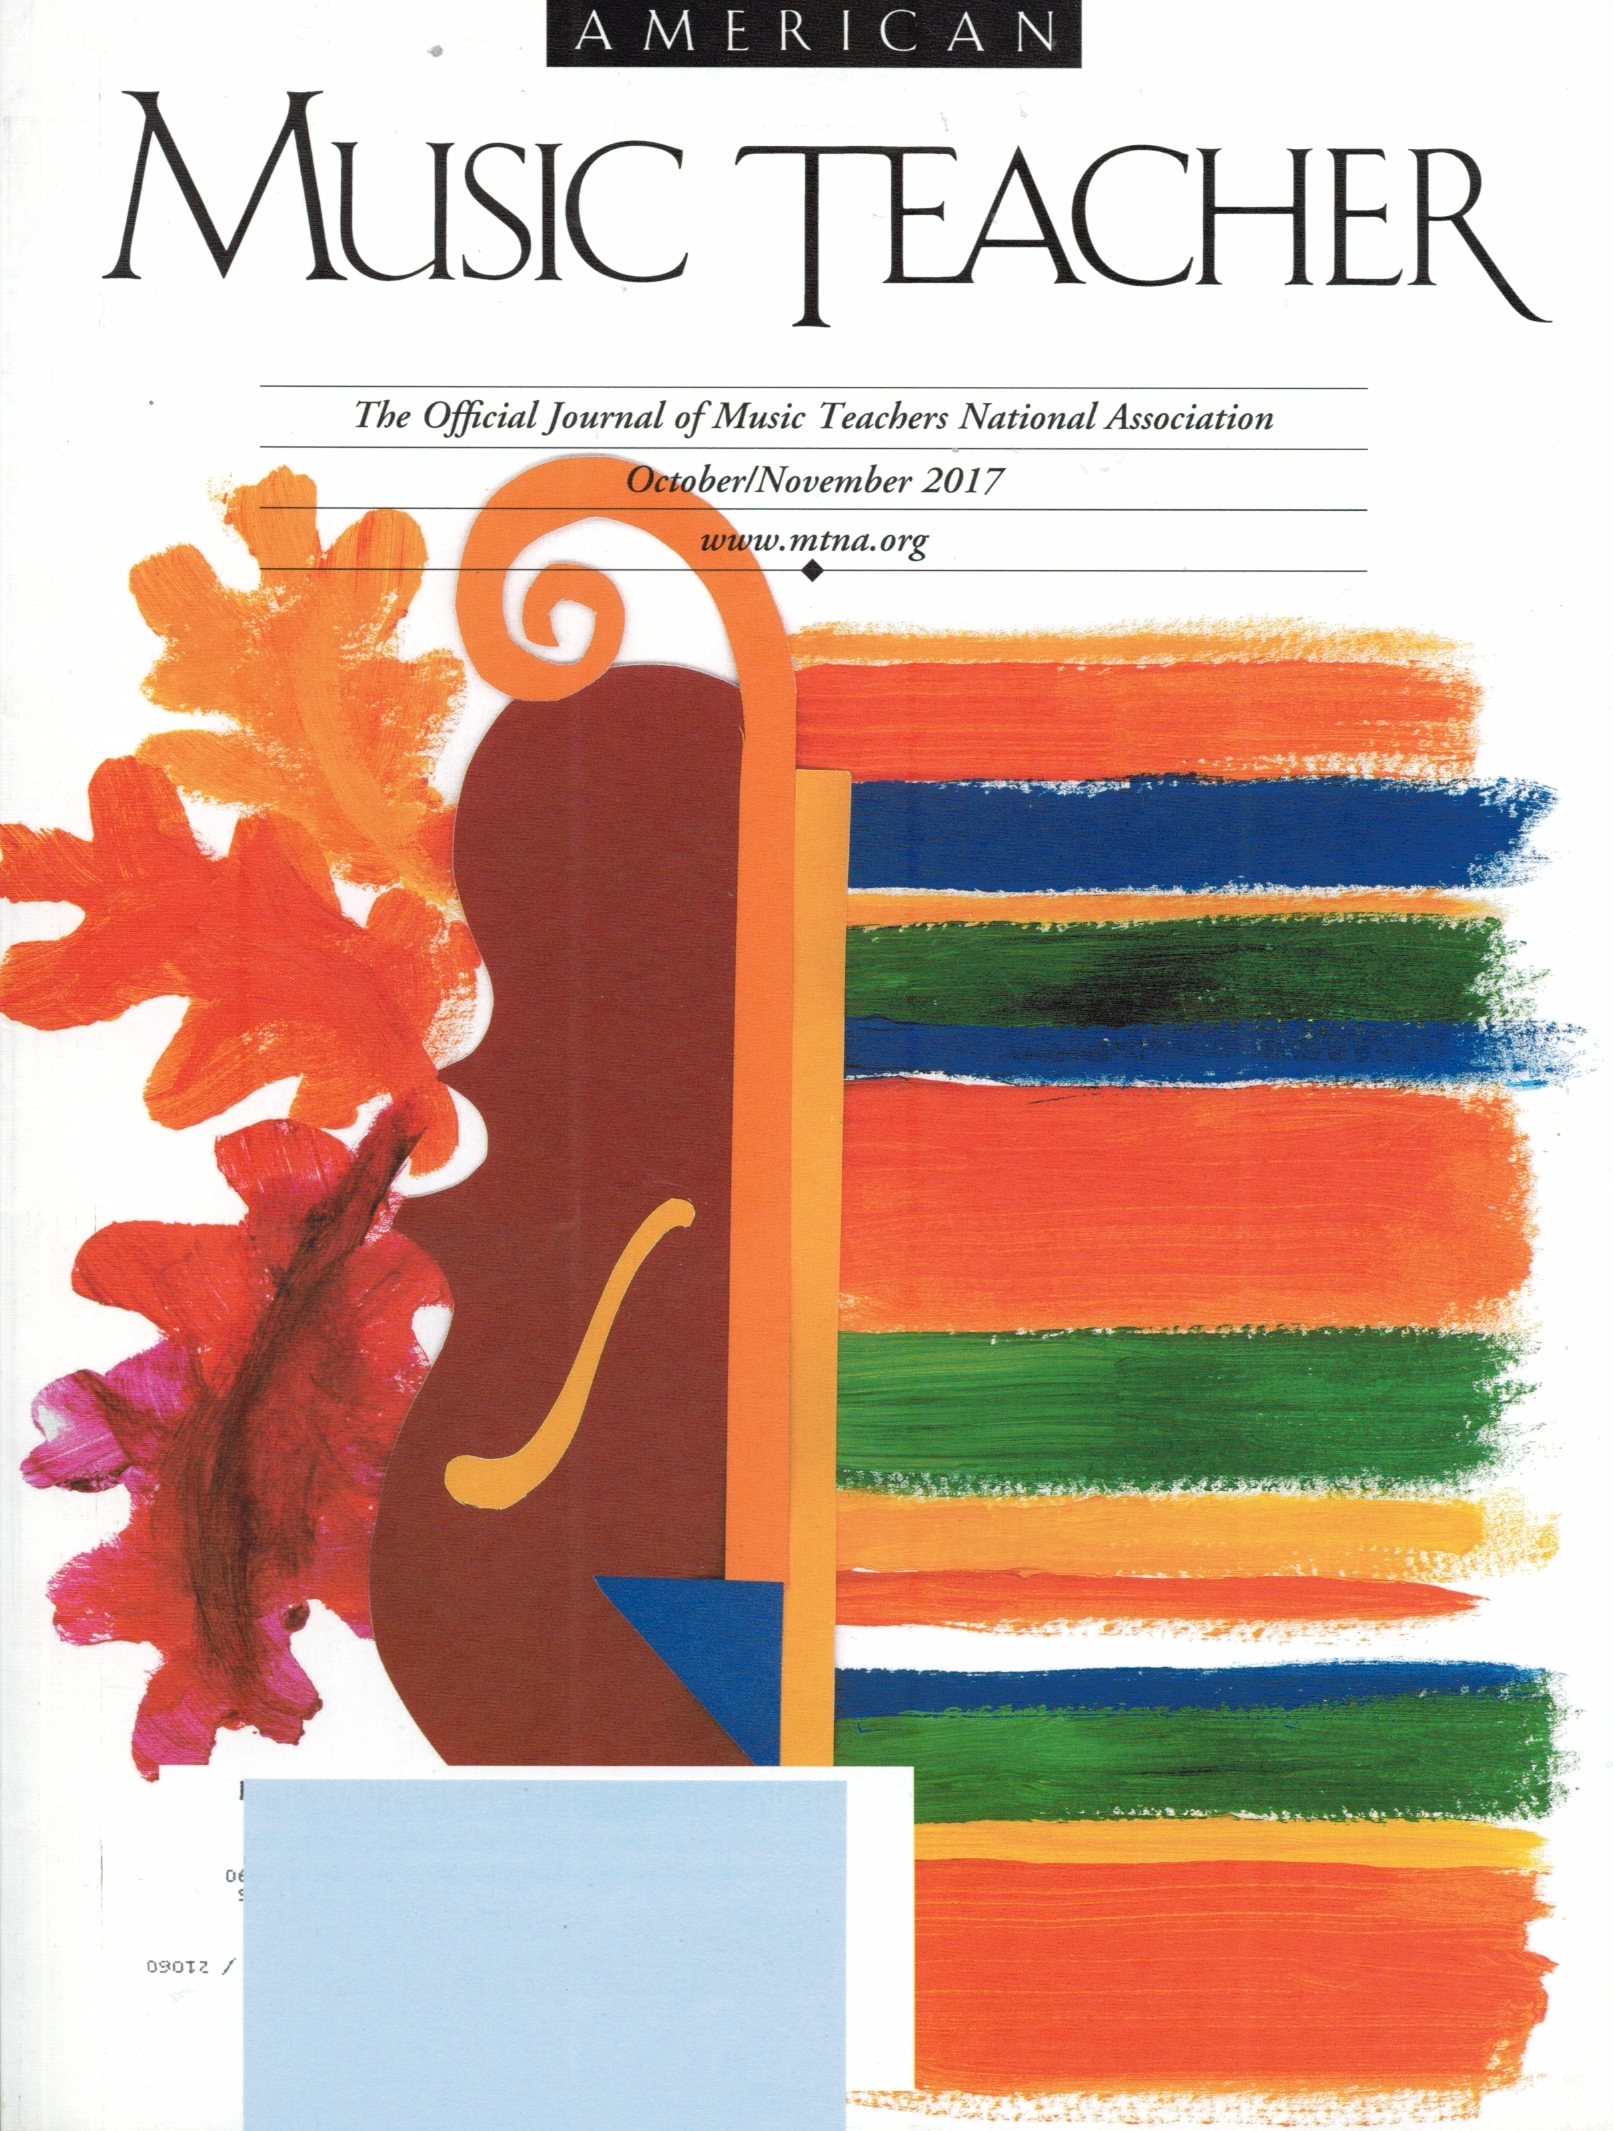 The Pastorale: 26 Pieces Composed in the Pastorale Tradition, ed. Nicholas Hopkins - American Music Teacher magazine, (October/November 2017, pp. 49-50)